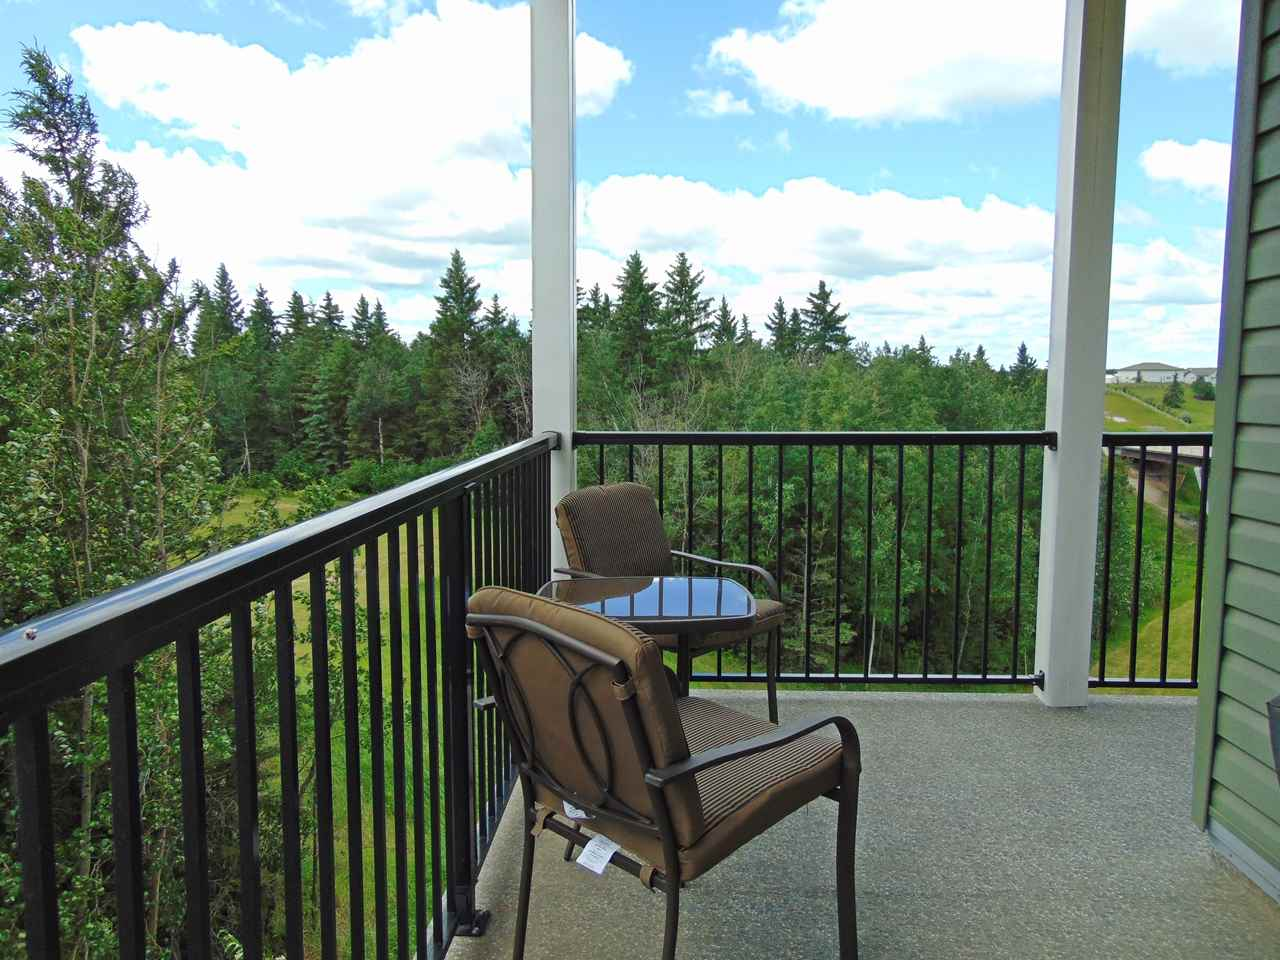 Photo 22: 203 4922 52 Street: Gibbons Condo for sale : MLS® # E4071334